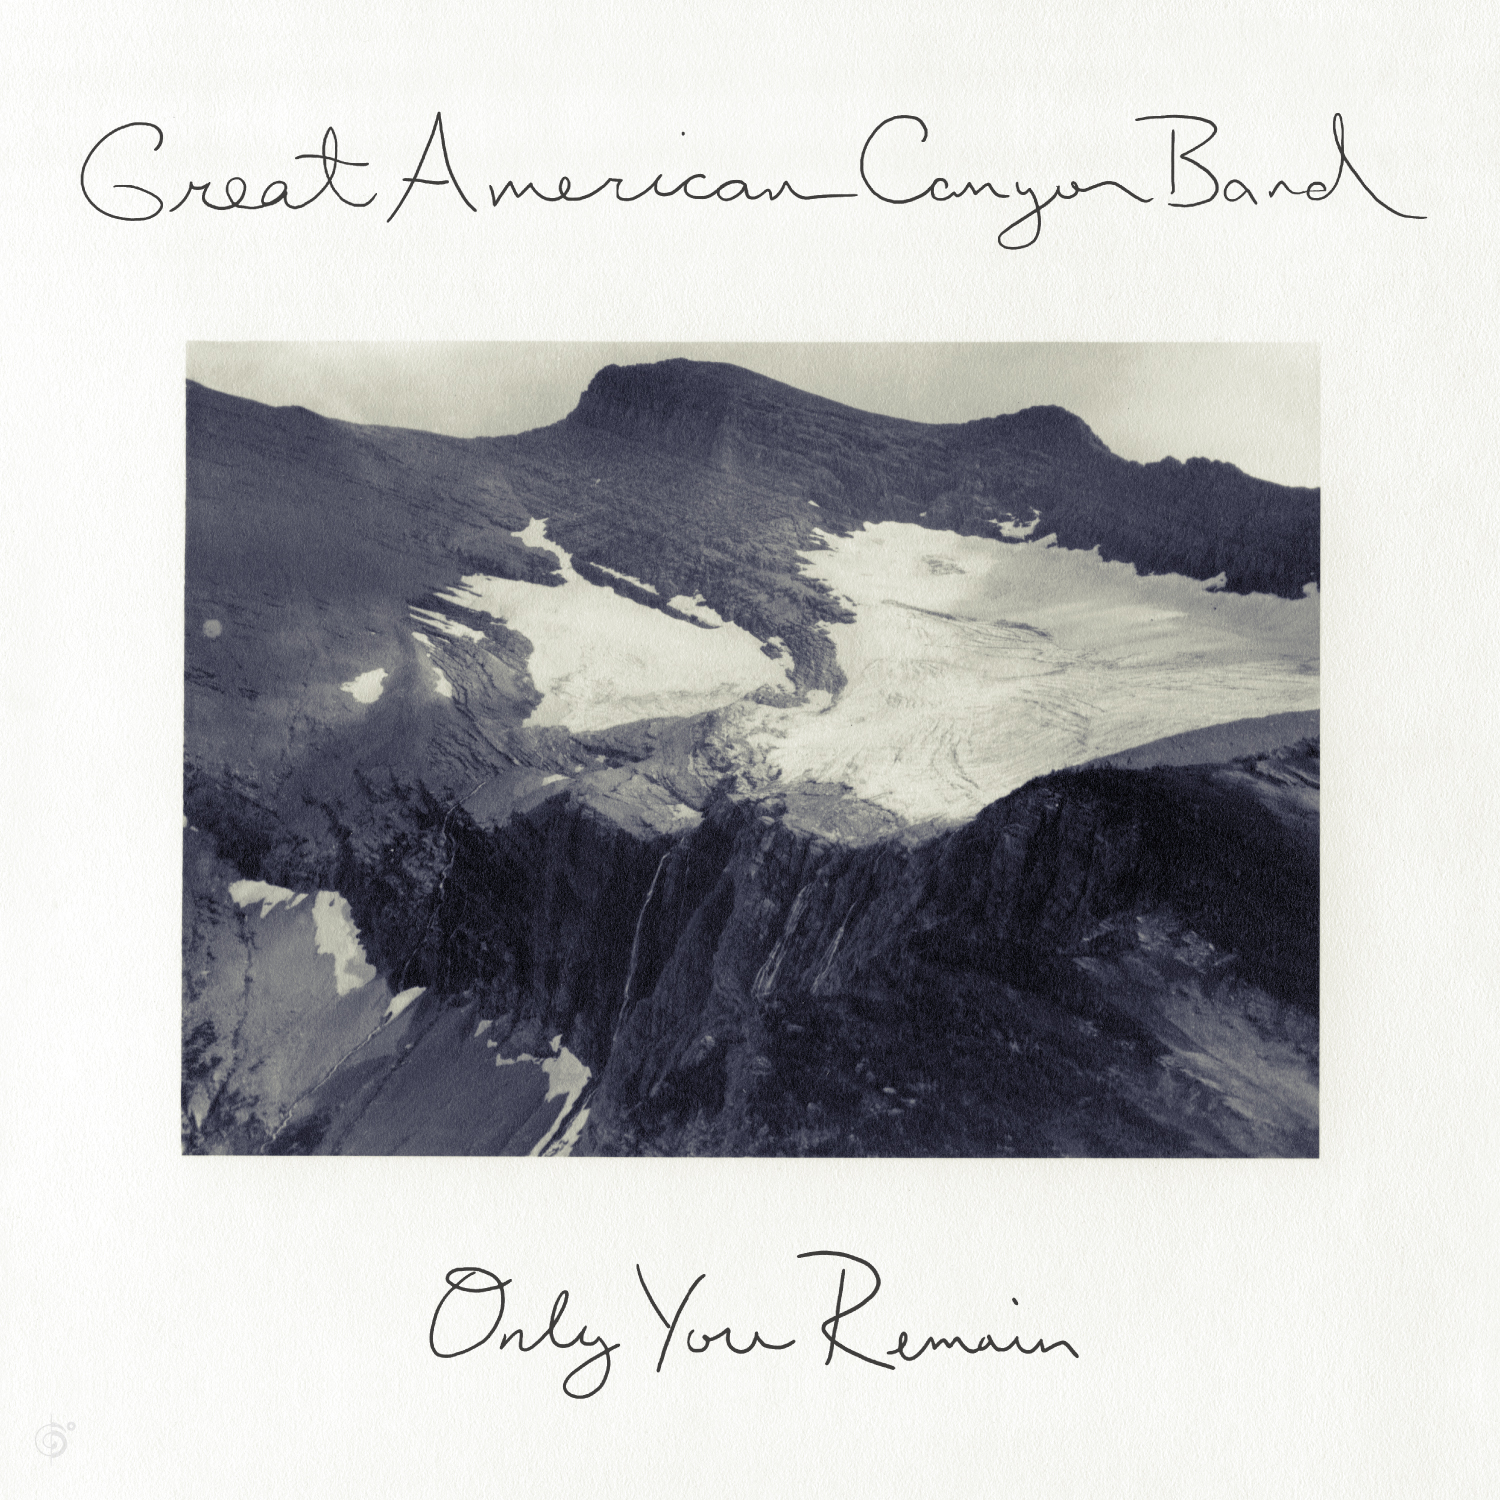 Great American Canyon Band – Only You Remain